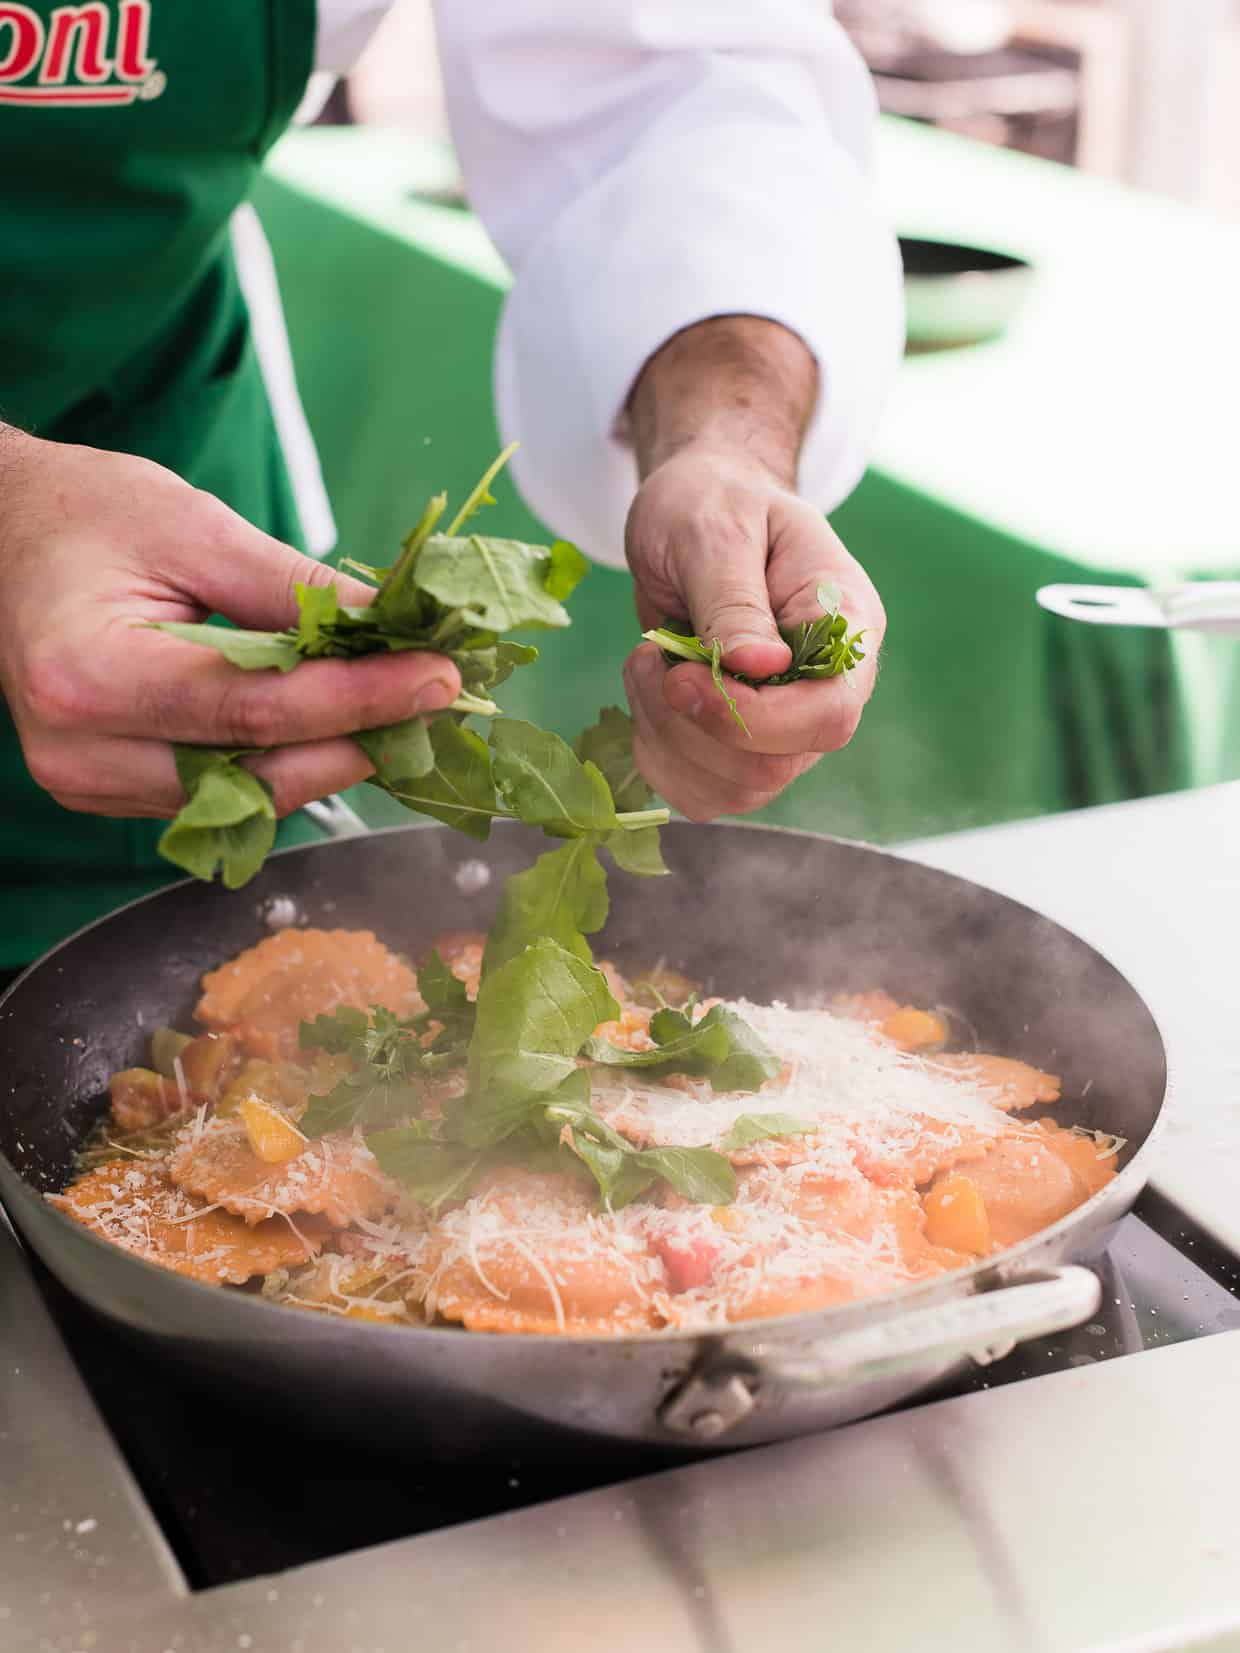 Buitoni Chef Riccardo Landi transforming Buitoni refrigerated vegetable and herb infused pastas into a simple dish using arugula sourced from the farmer's market. #ad